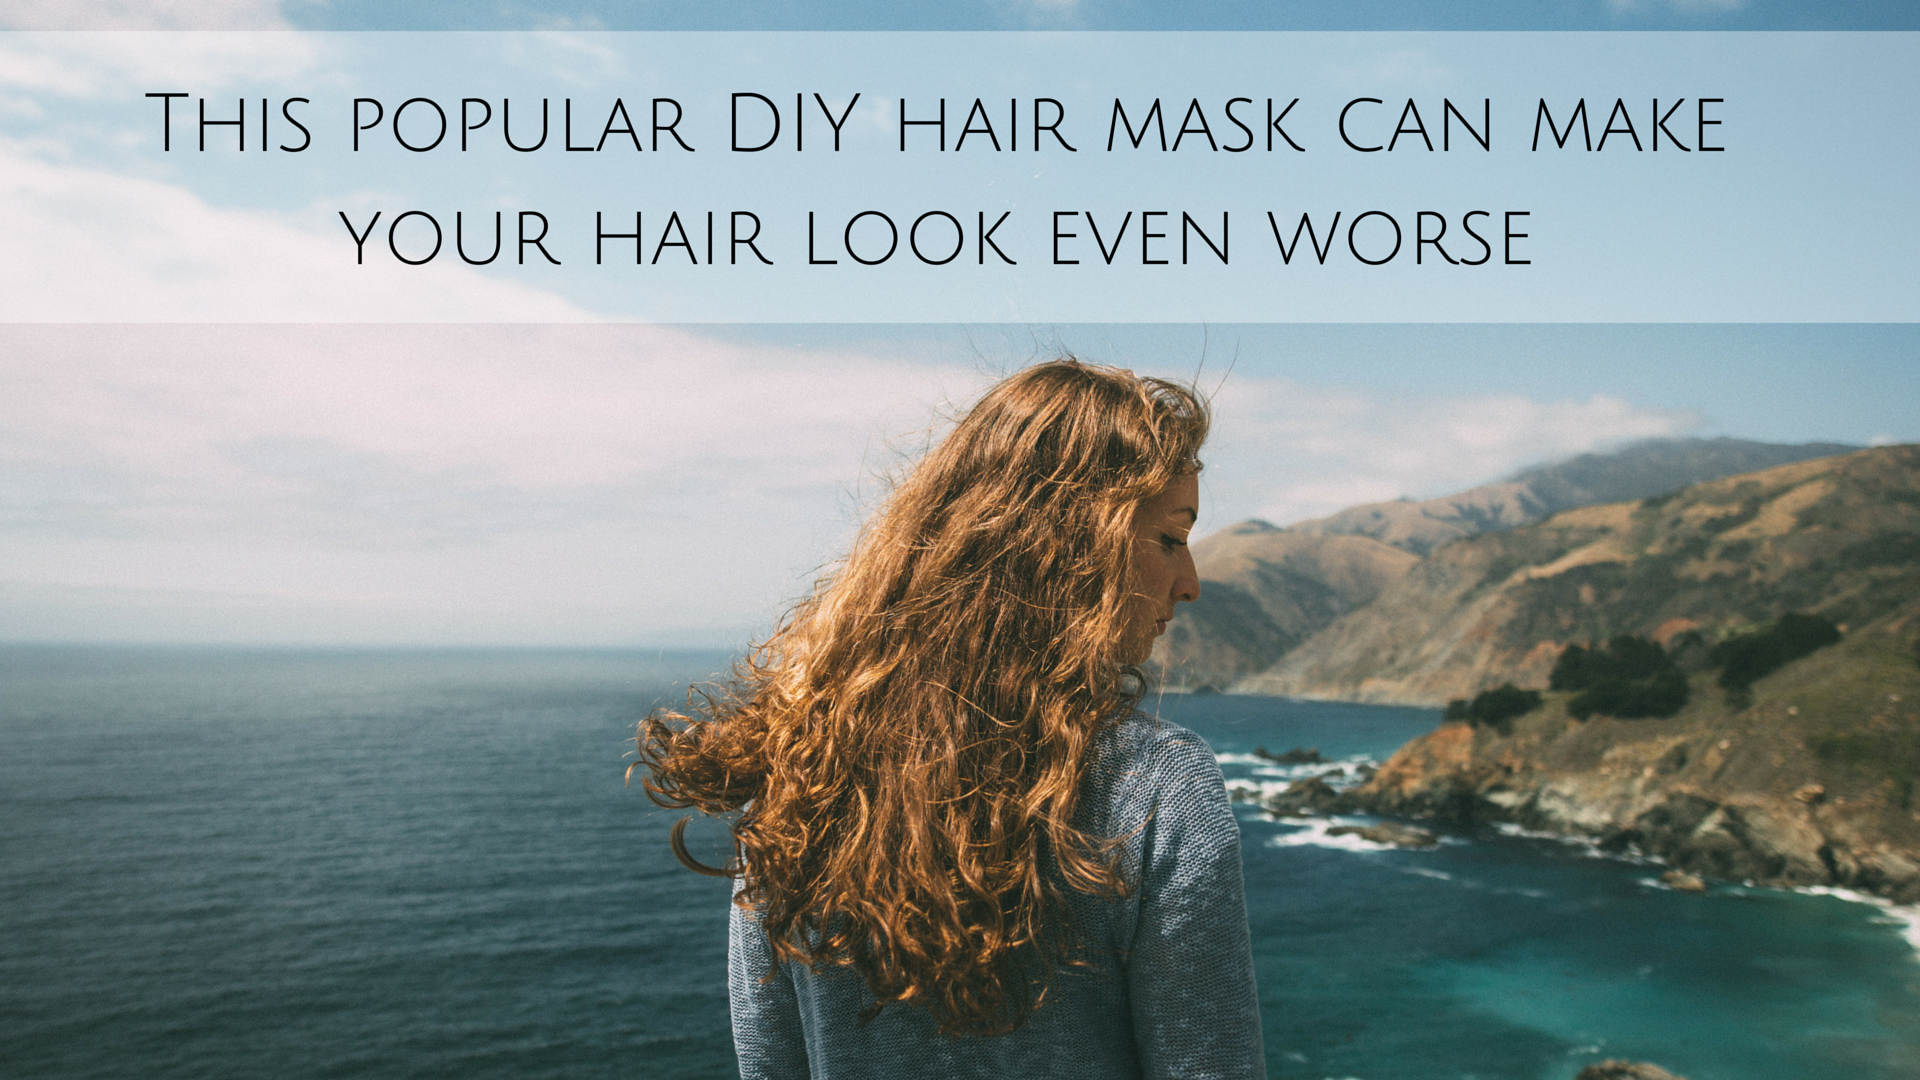 This popular DIY hair mask can make your hair look even worse